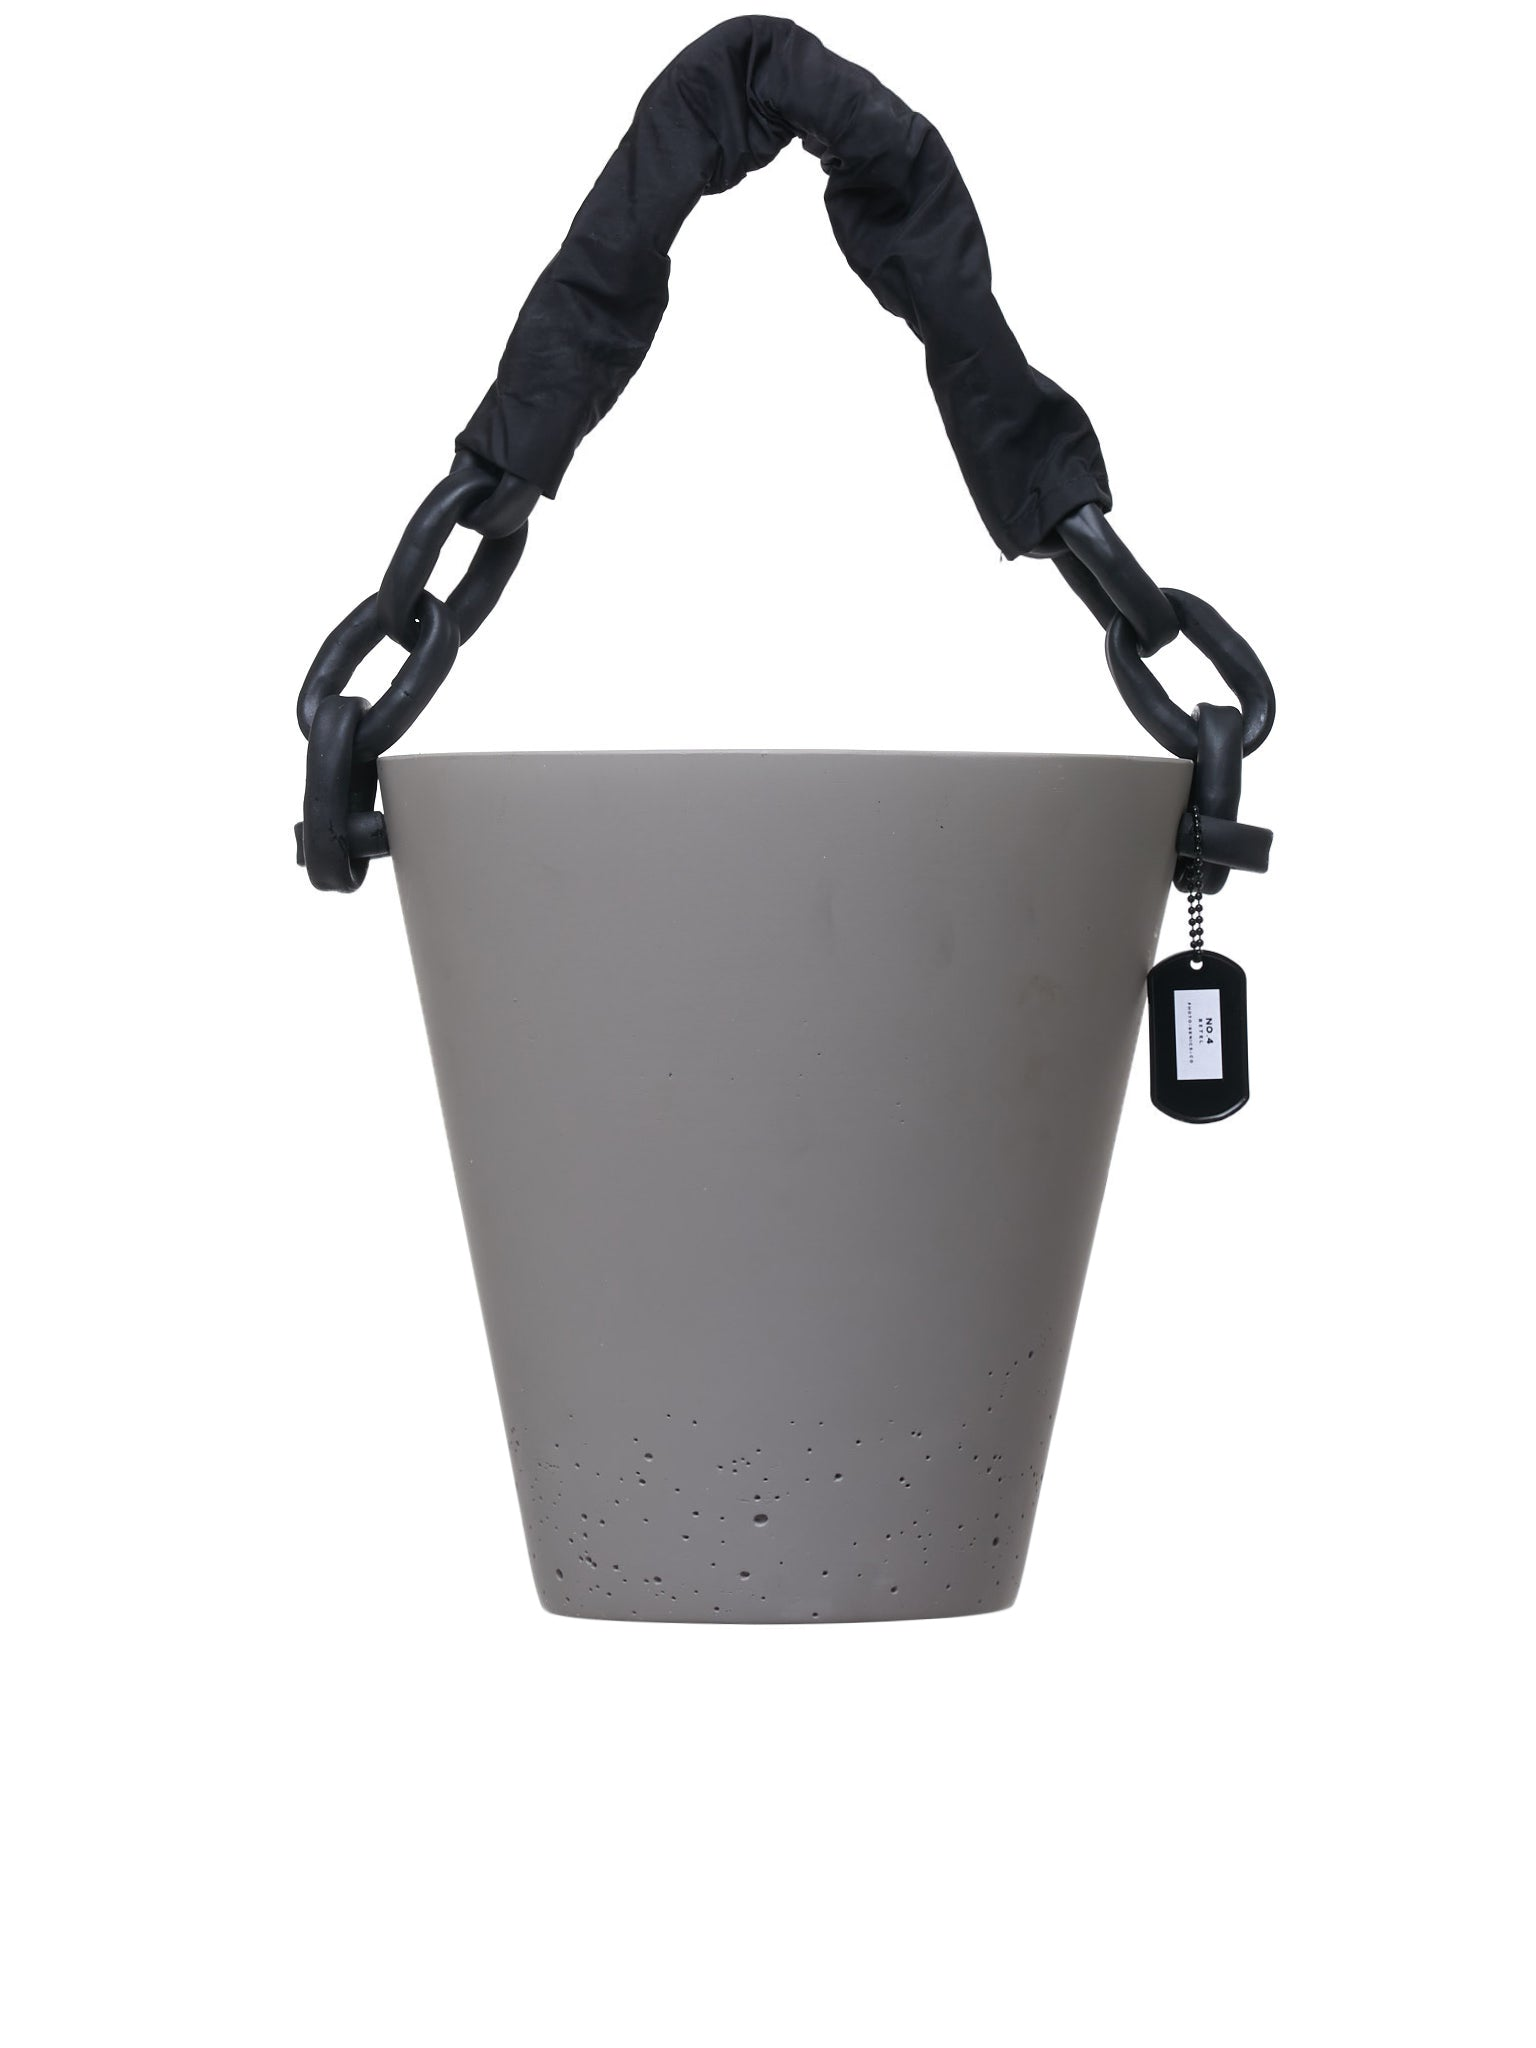 Xl Concrete Bucket Candle No. 4 Betel (PGCOXLB4-112-OZ-BETEL)